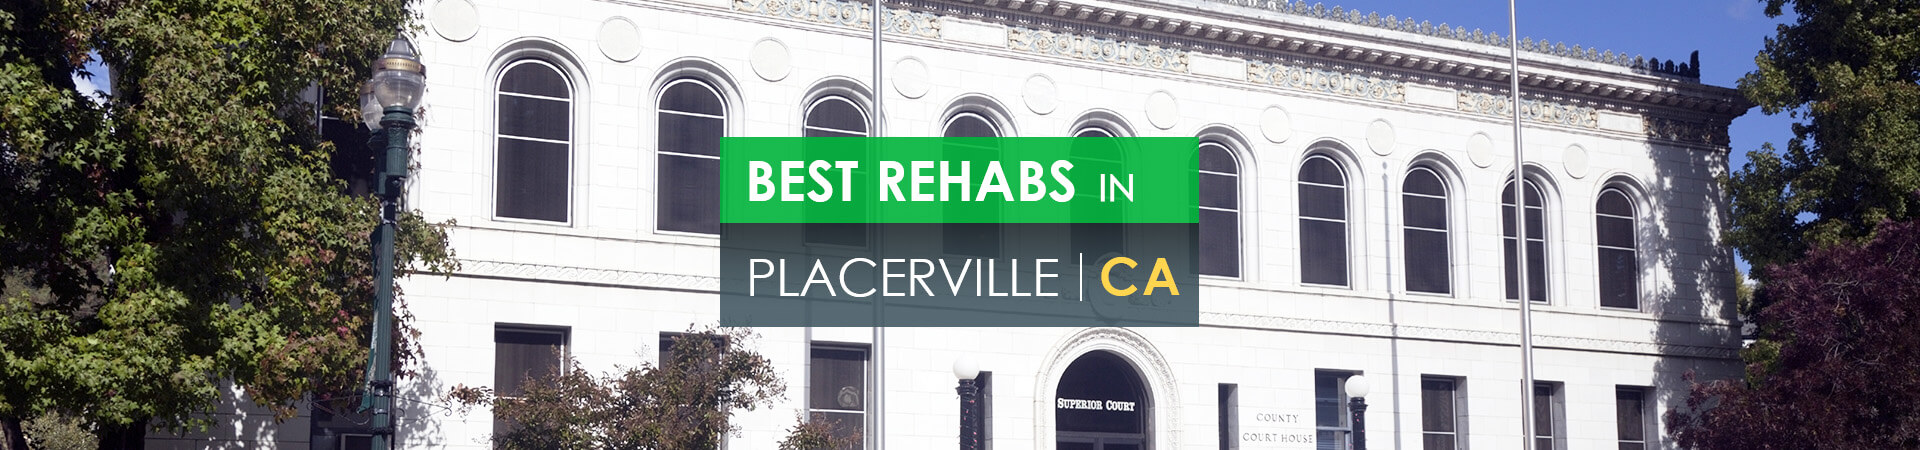 Best rehabs in Placerville, CA